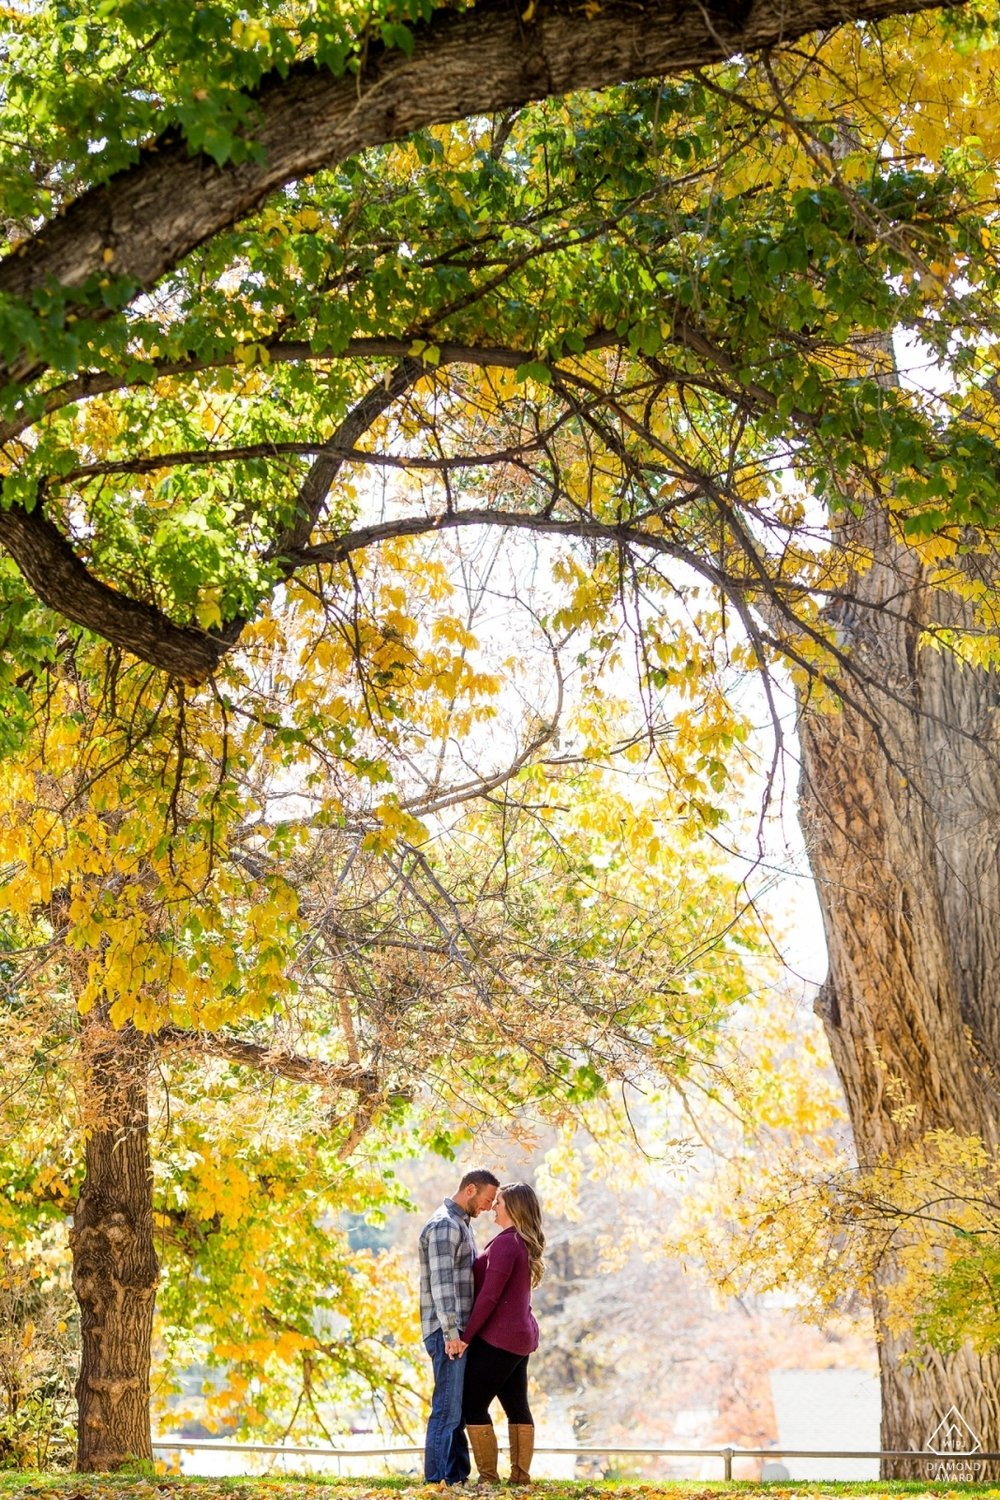 lake_tahoe_wedding_photographer_lake_tahoe_photgrapher_kevin_sawyer_photography_www.kevinsawyerphotography.com_12.jpg